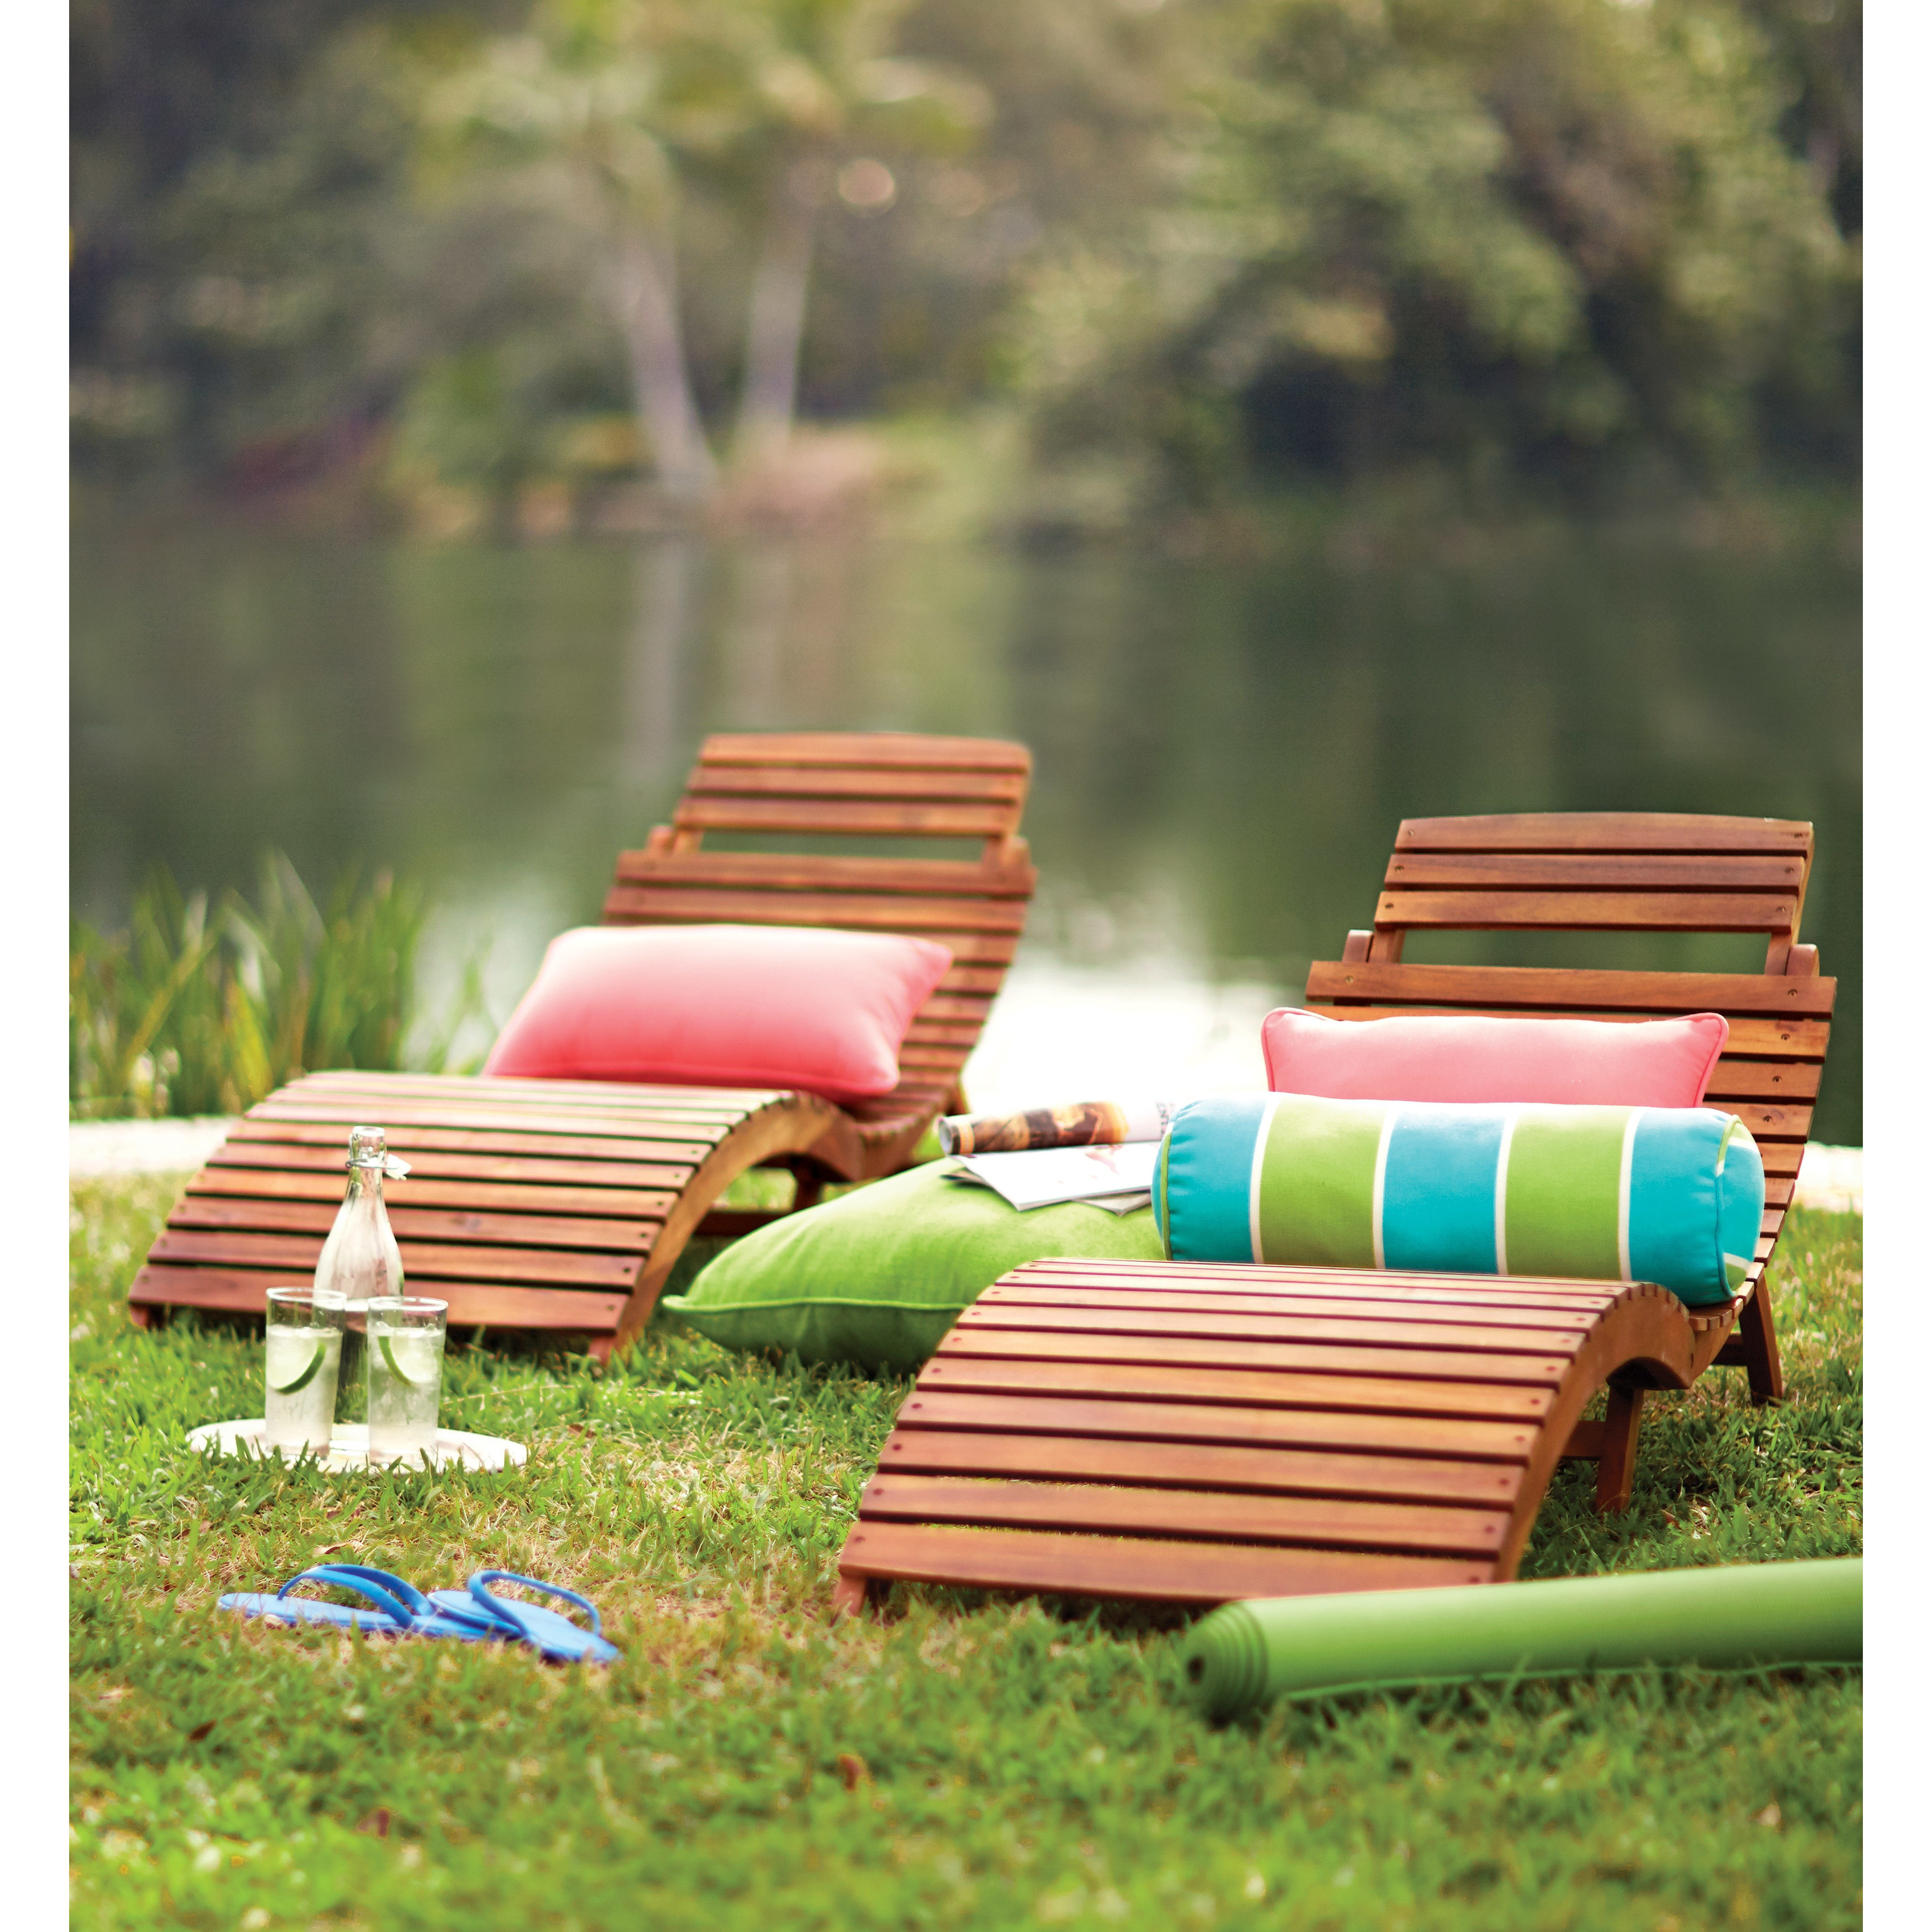 shopping cheap outdoor toogoo guides chaise find deals pool lounge beach patio on metal at r line folding lawn chair